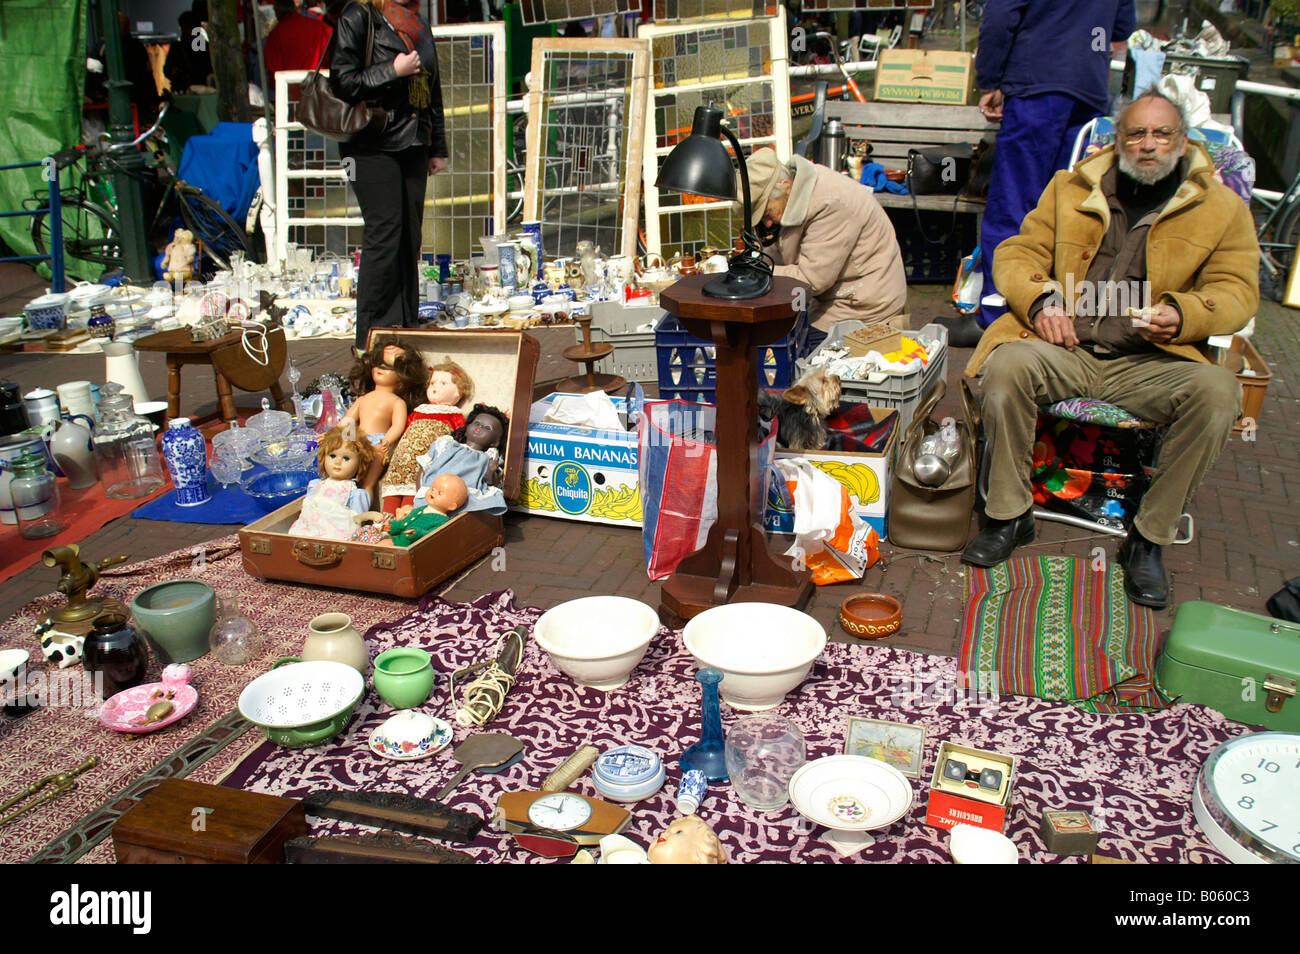 Traditional flea market in Delf city historic center man selling antiques collectables on street, Netherlands - Stock Image